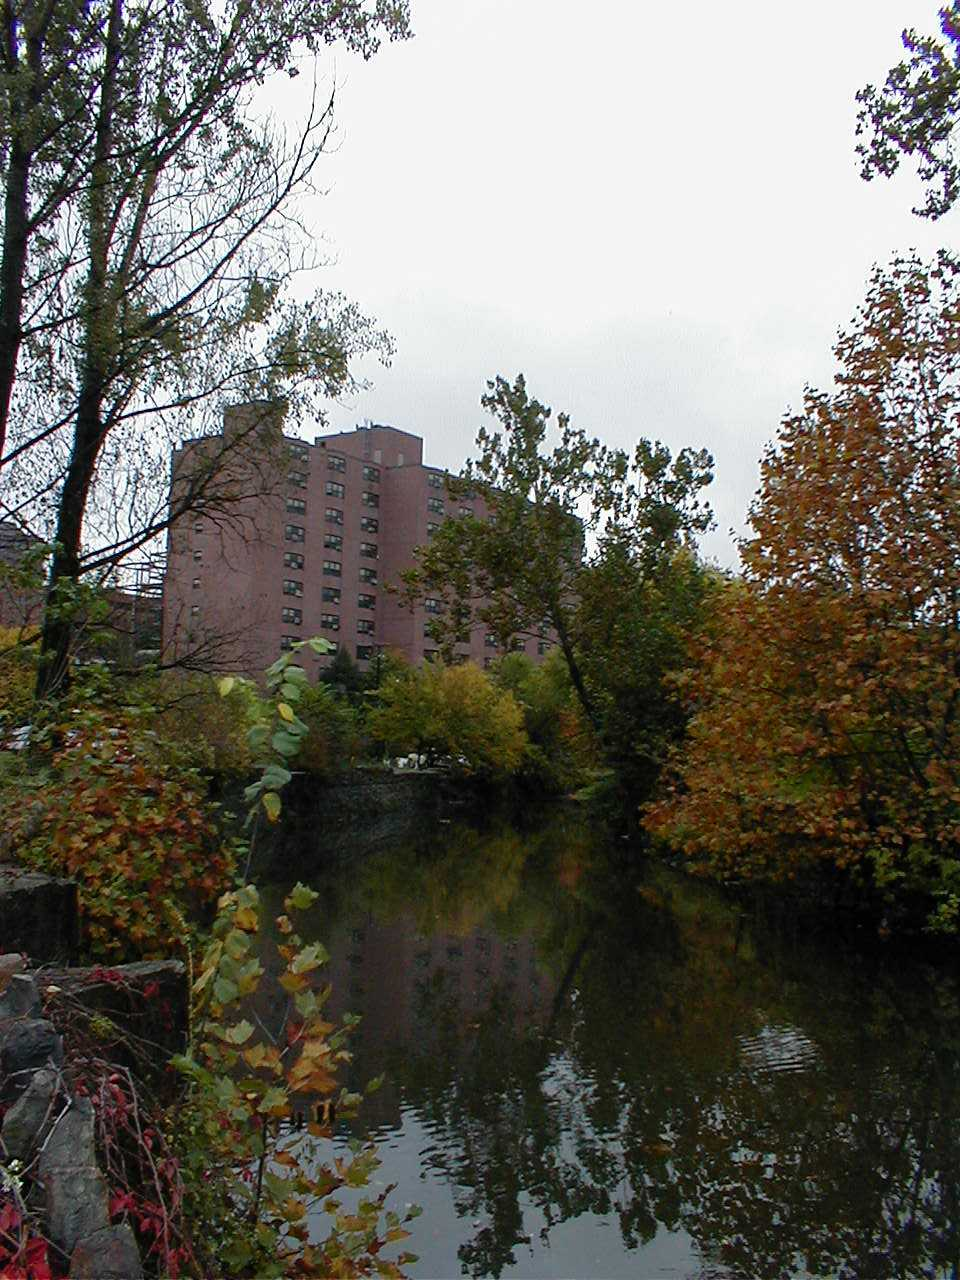 Monocacy Tower